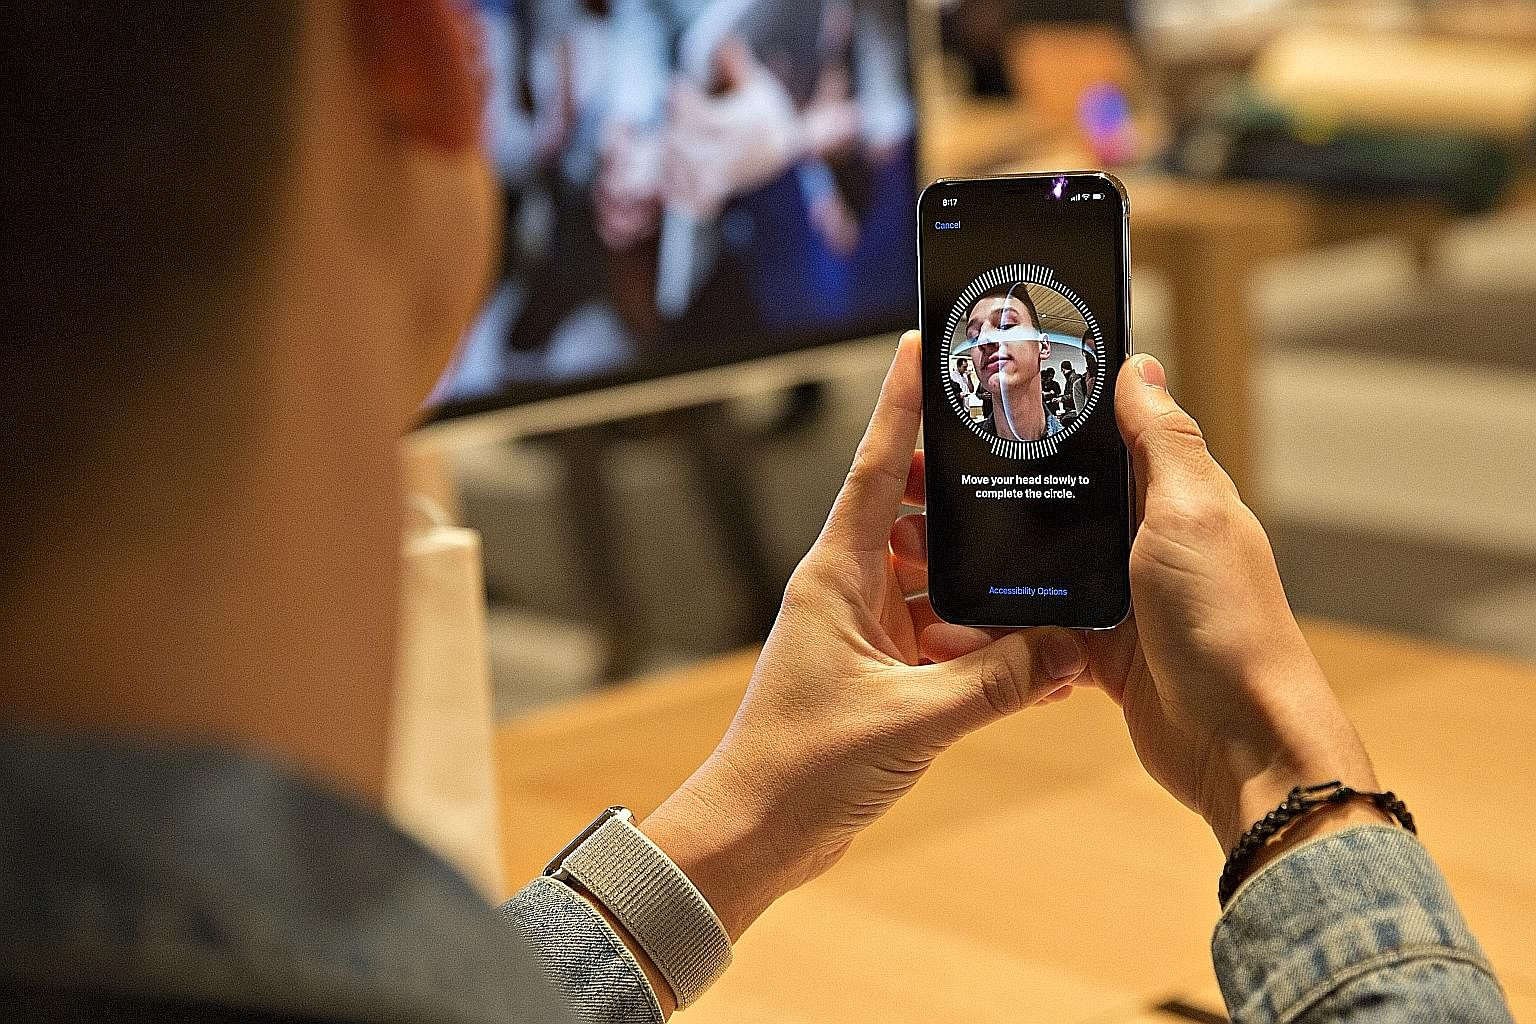 An iPhone X user setting up Face ID on his phone. The phone uses infrared and 3D sensors to make a comprehensive map of a user's face. It is smart enough to detect changes to a face, such as with spectacles or a new beard, but cannot tell identical t